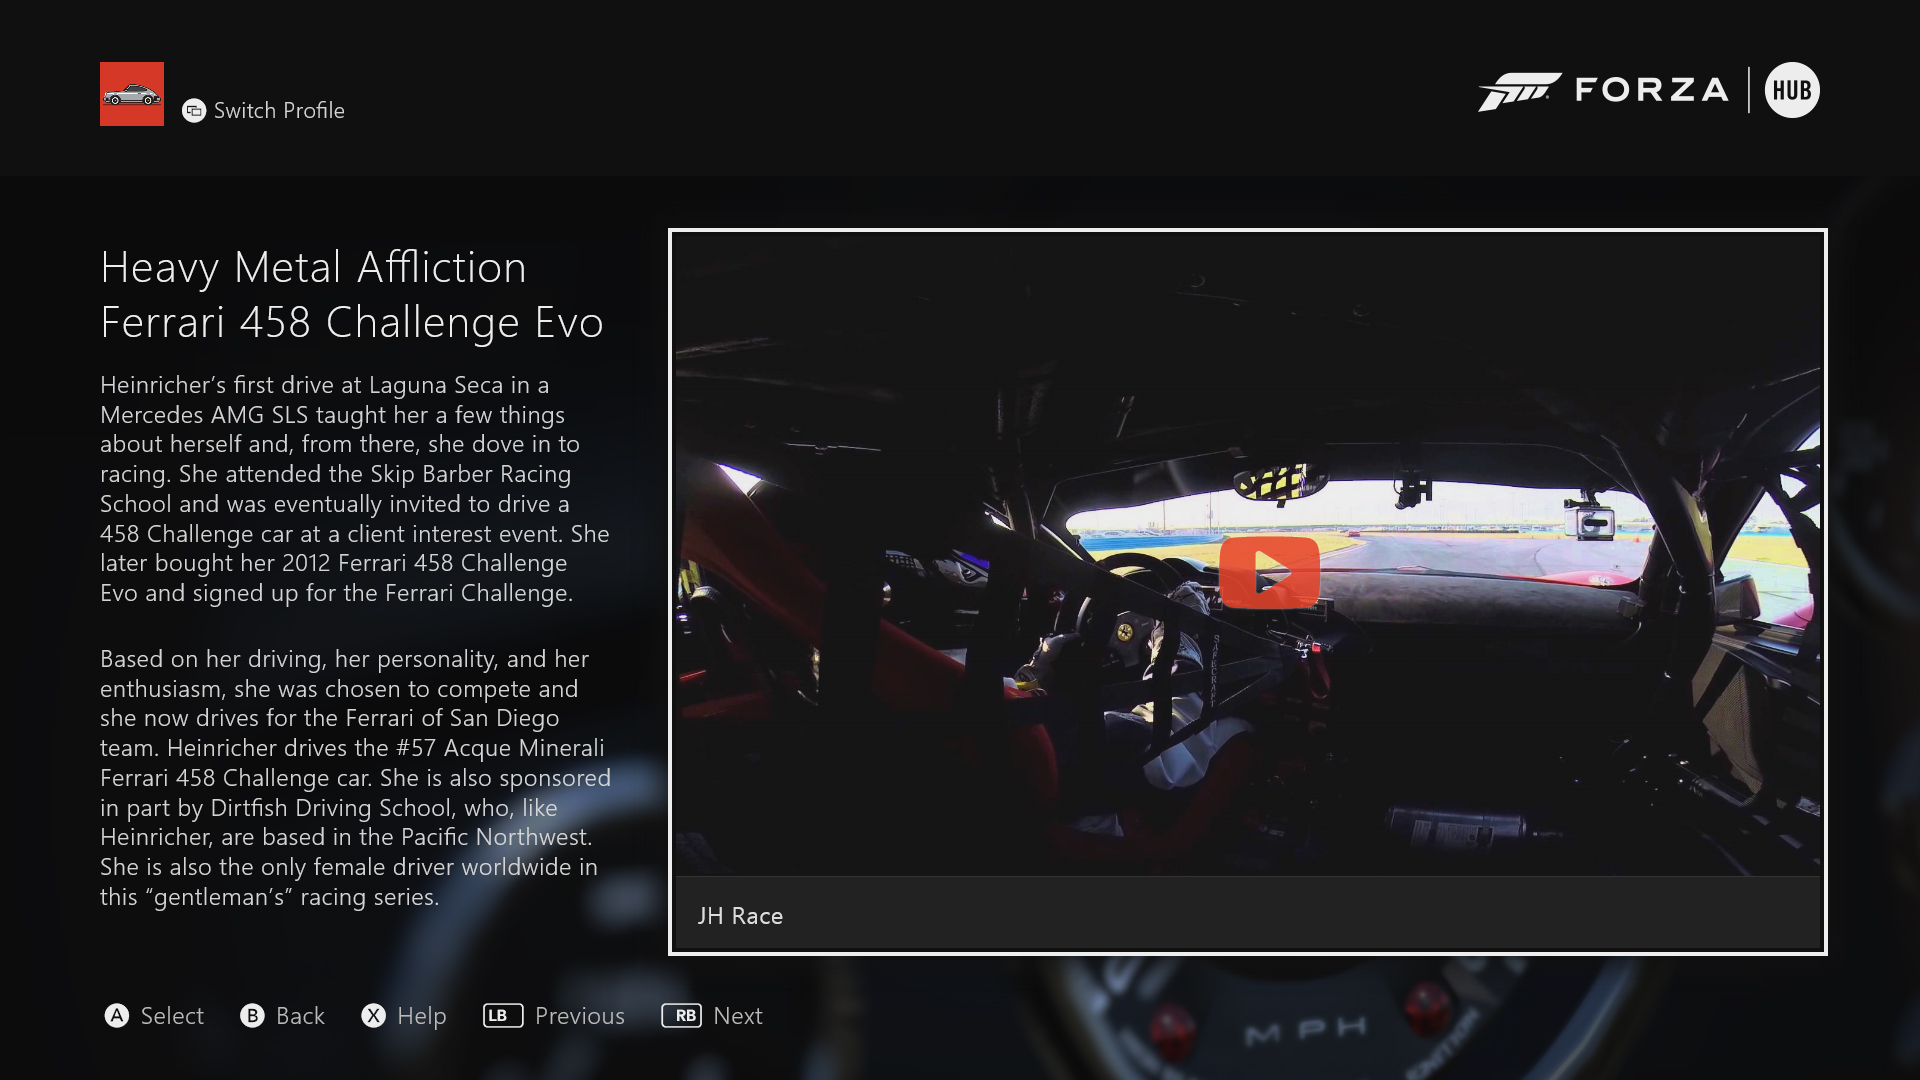 Forza Motorsport - Forza Hub Is Here